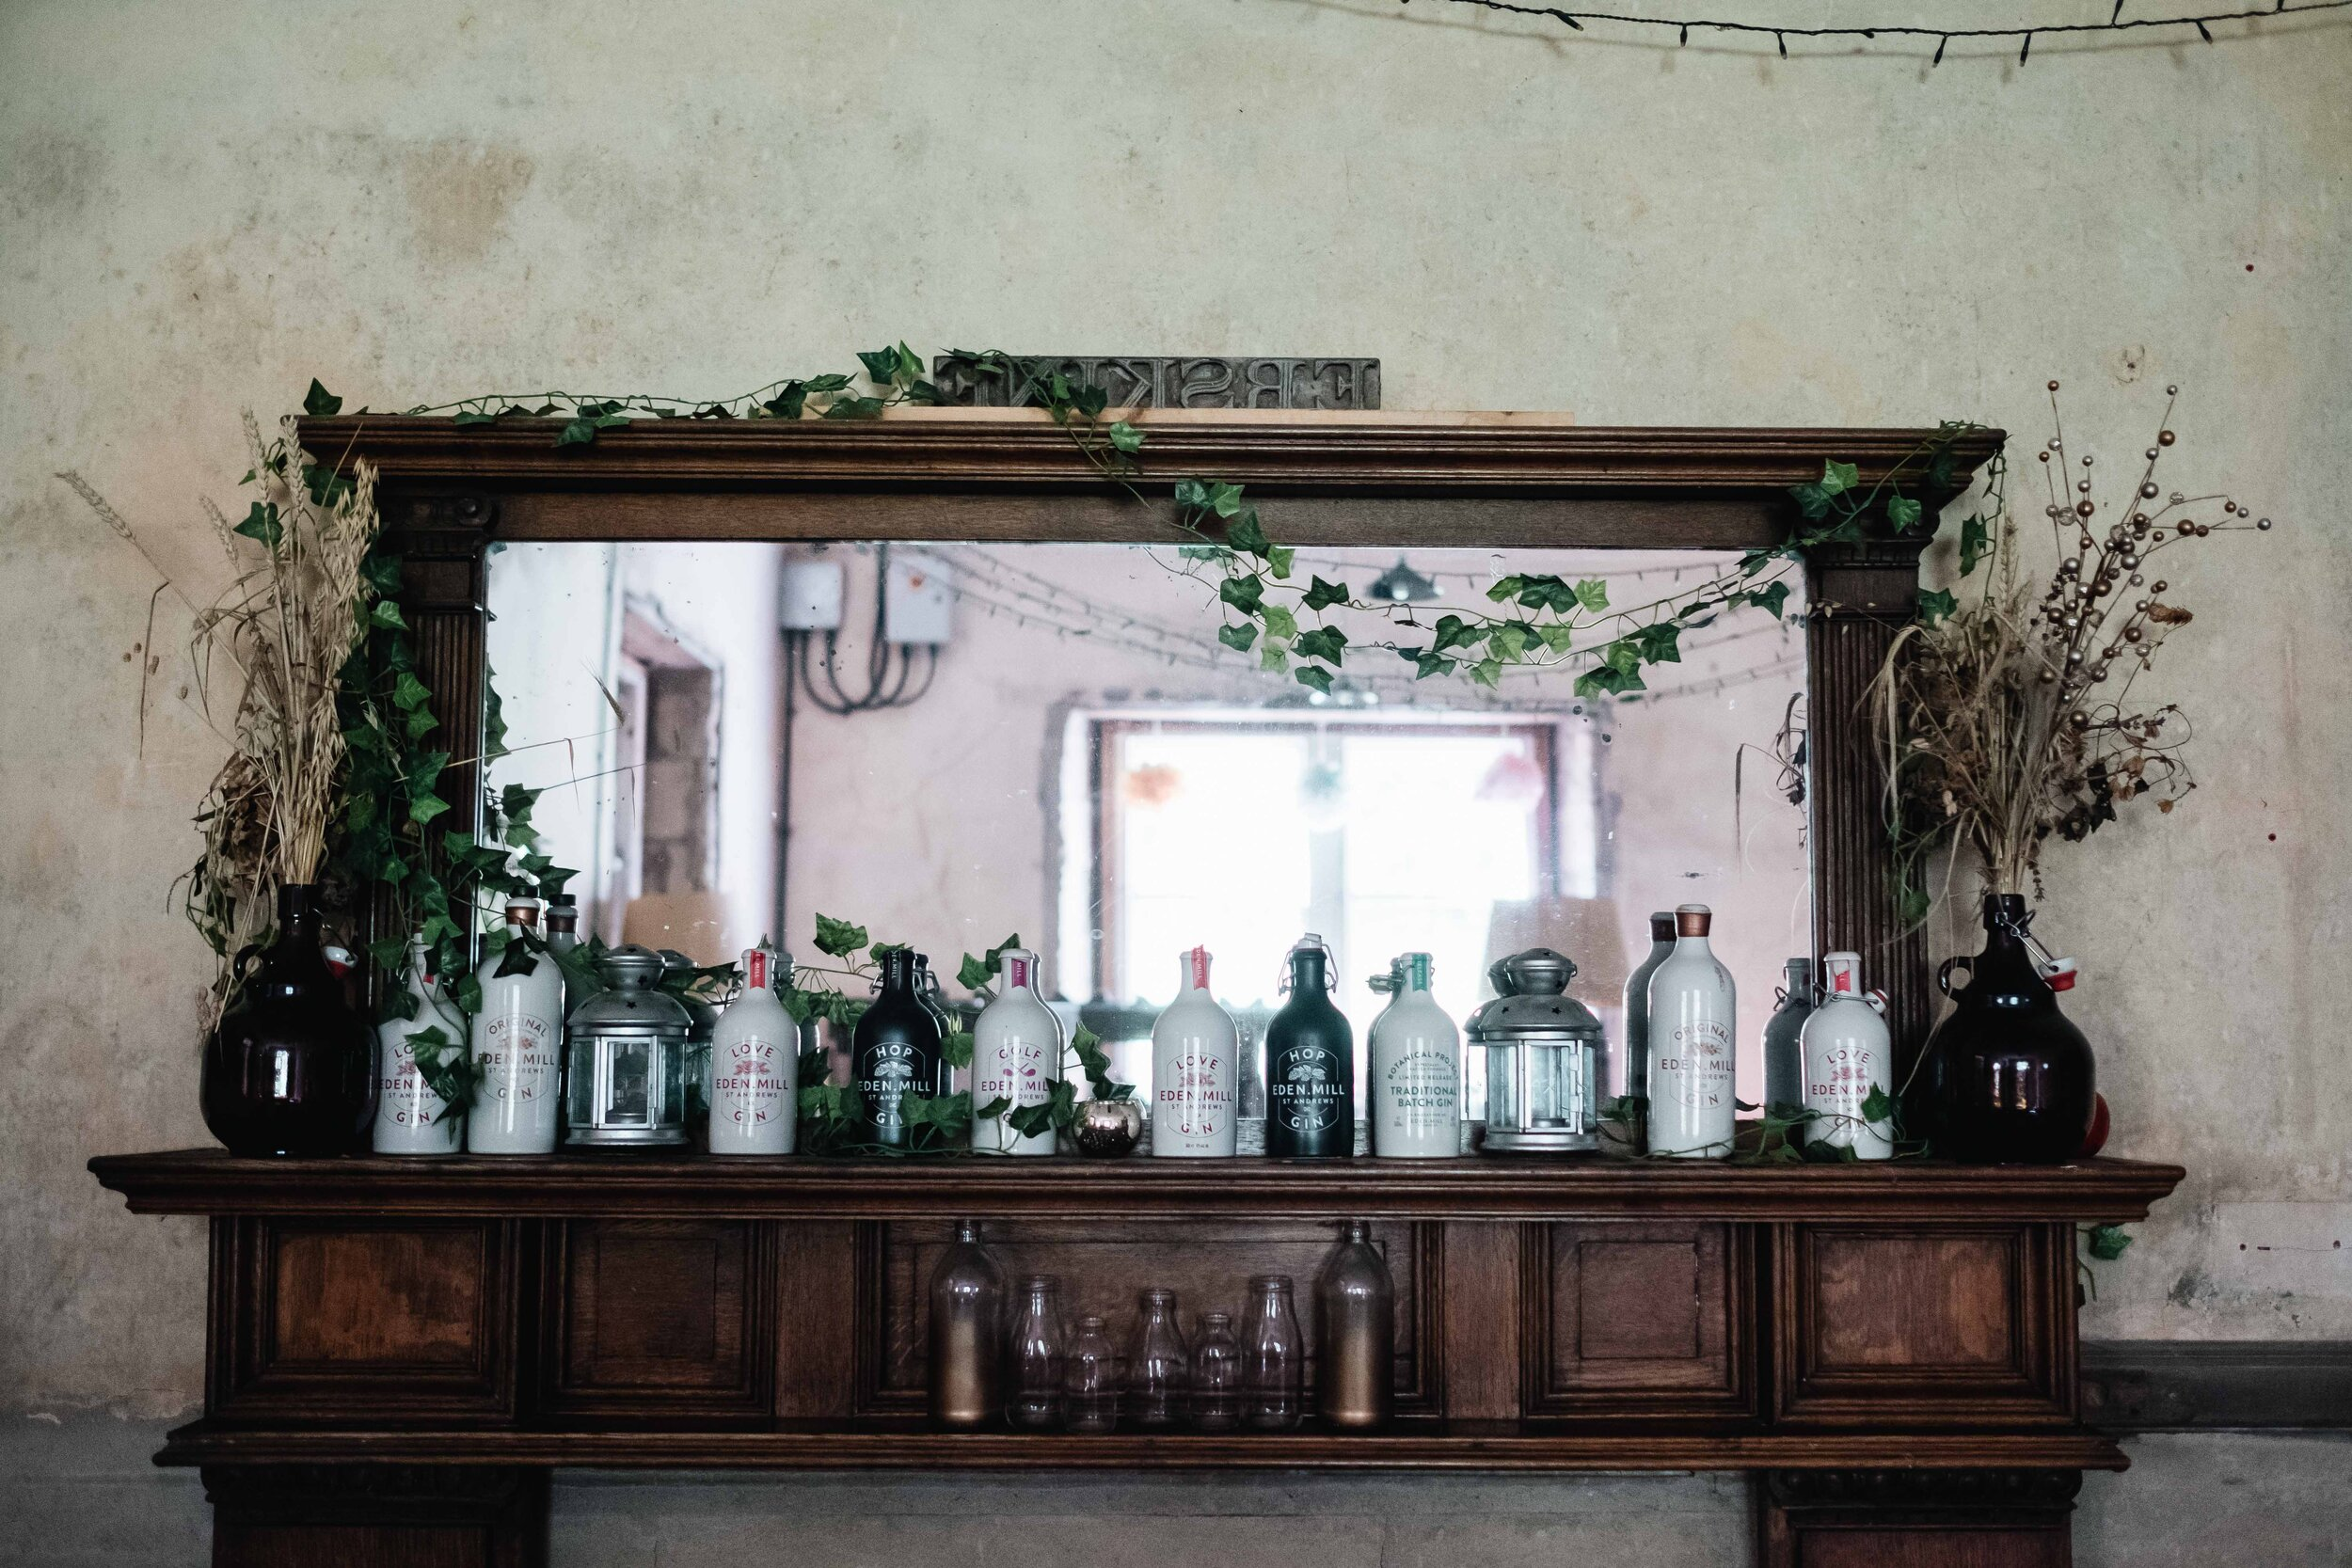 The mirror of the Cambolicious bar area is lined with Eden Mill Gin bottles.